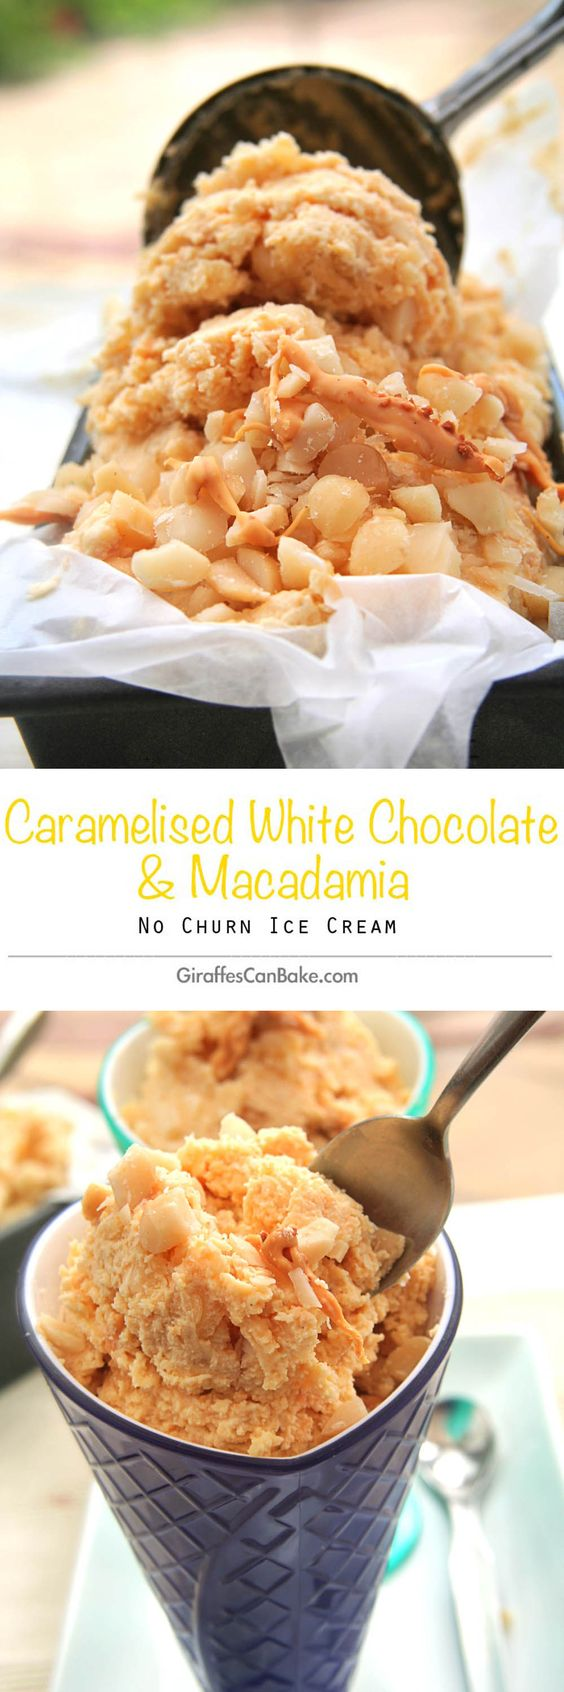 Caramelised White Chocolate and Macadamia Ice Cream by Giraffes Can Bake - Decadent caramelised white chocolate stirred into a no churn homemade ice with toasted macadamias. The perfect dessert this summer